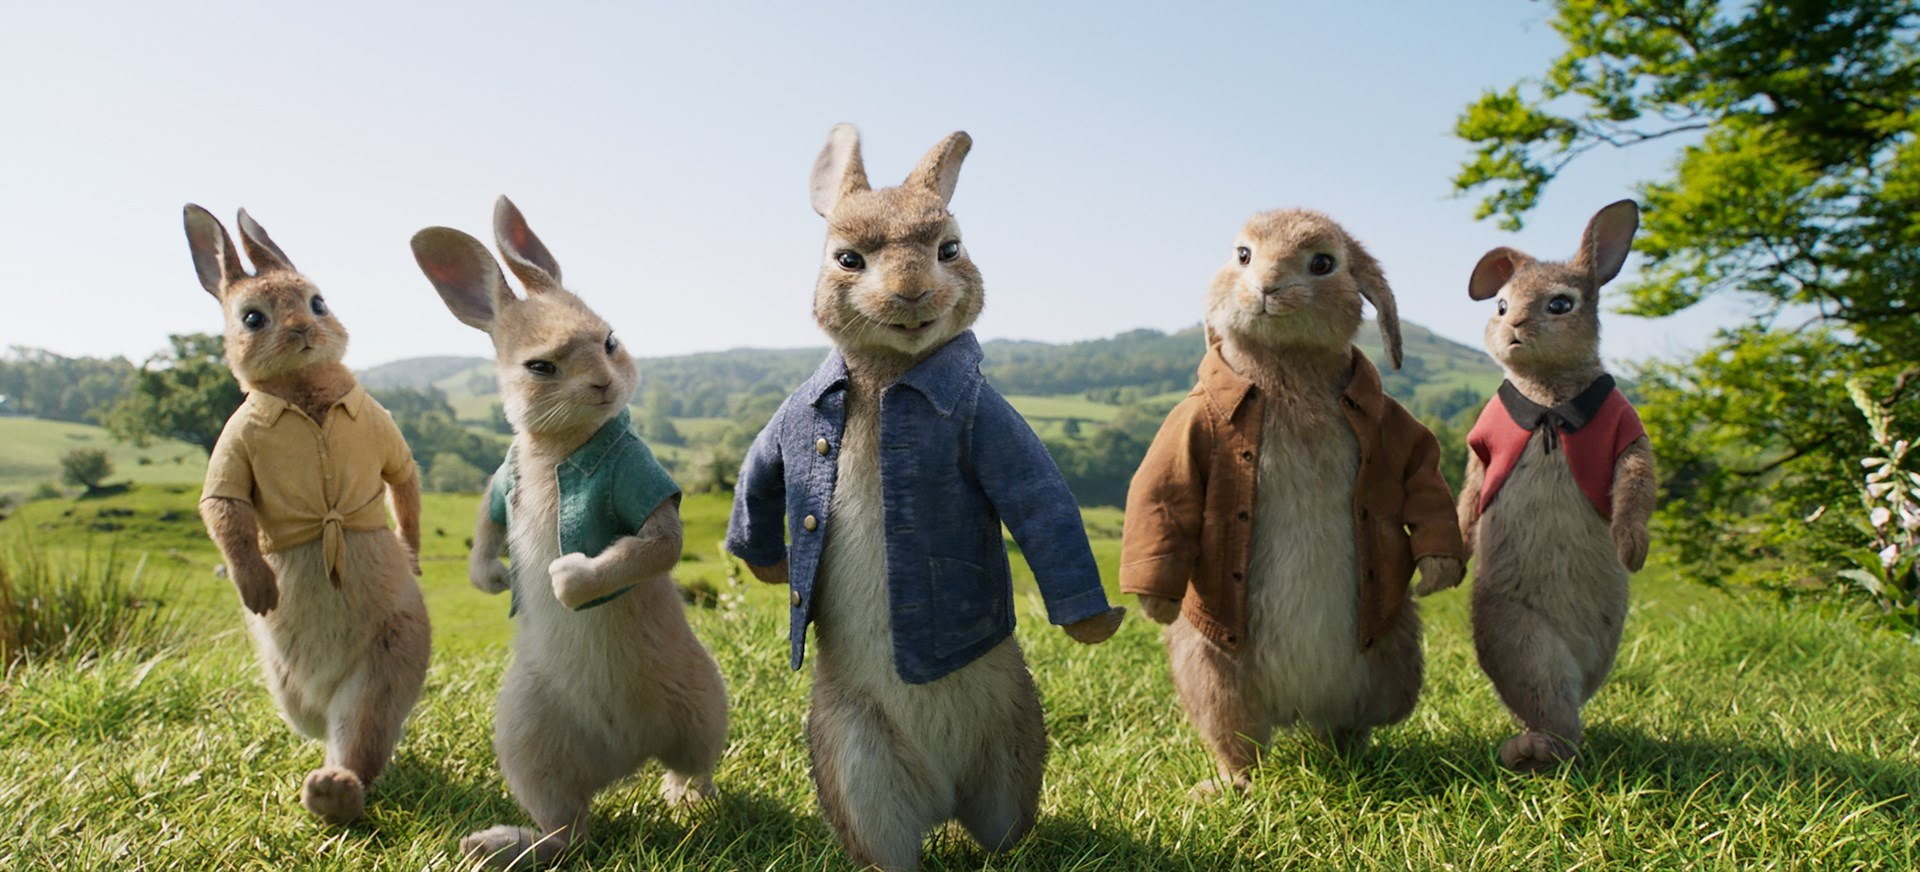 Impeccable Feature Update Watch Peter Rabbit 2017 Online Free Watch Peter Rabbit Online Free Megavideo Learns New Tricks Animal Logic Provided Animation houzz-02 Watch Peter Rabbit Online Free